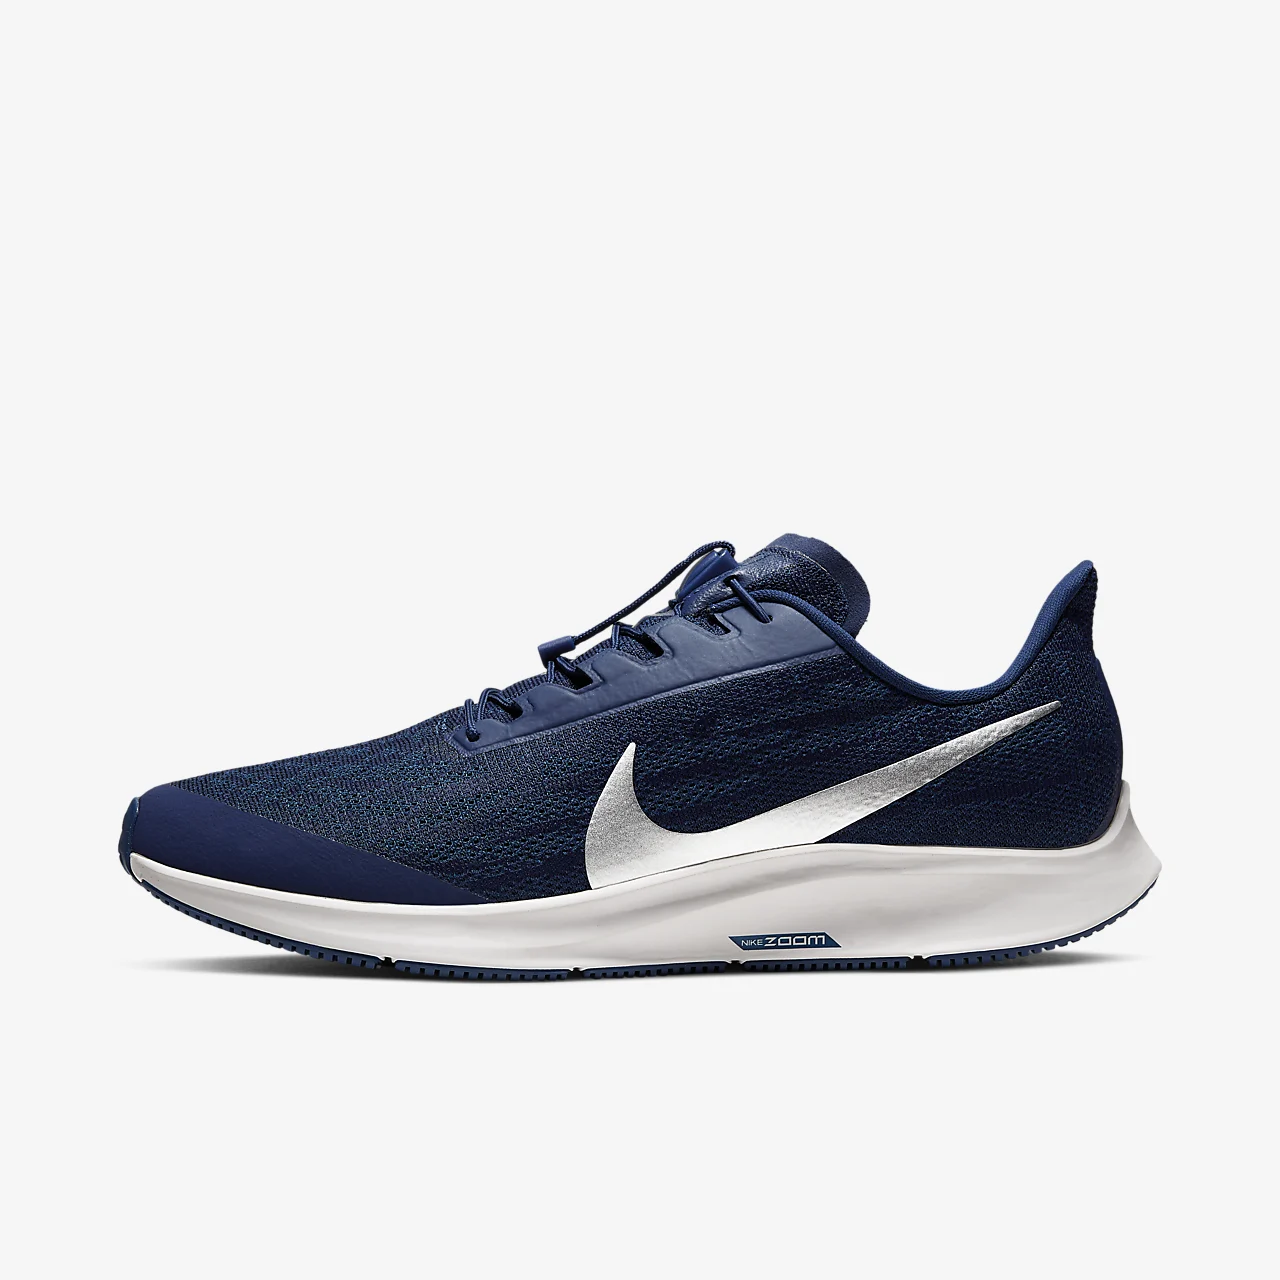 유럽직배송 나이키 NIKE Nike Air Zoom Pegasus 36 FlyEase Men's Running Shoe BV0613-401